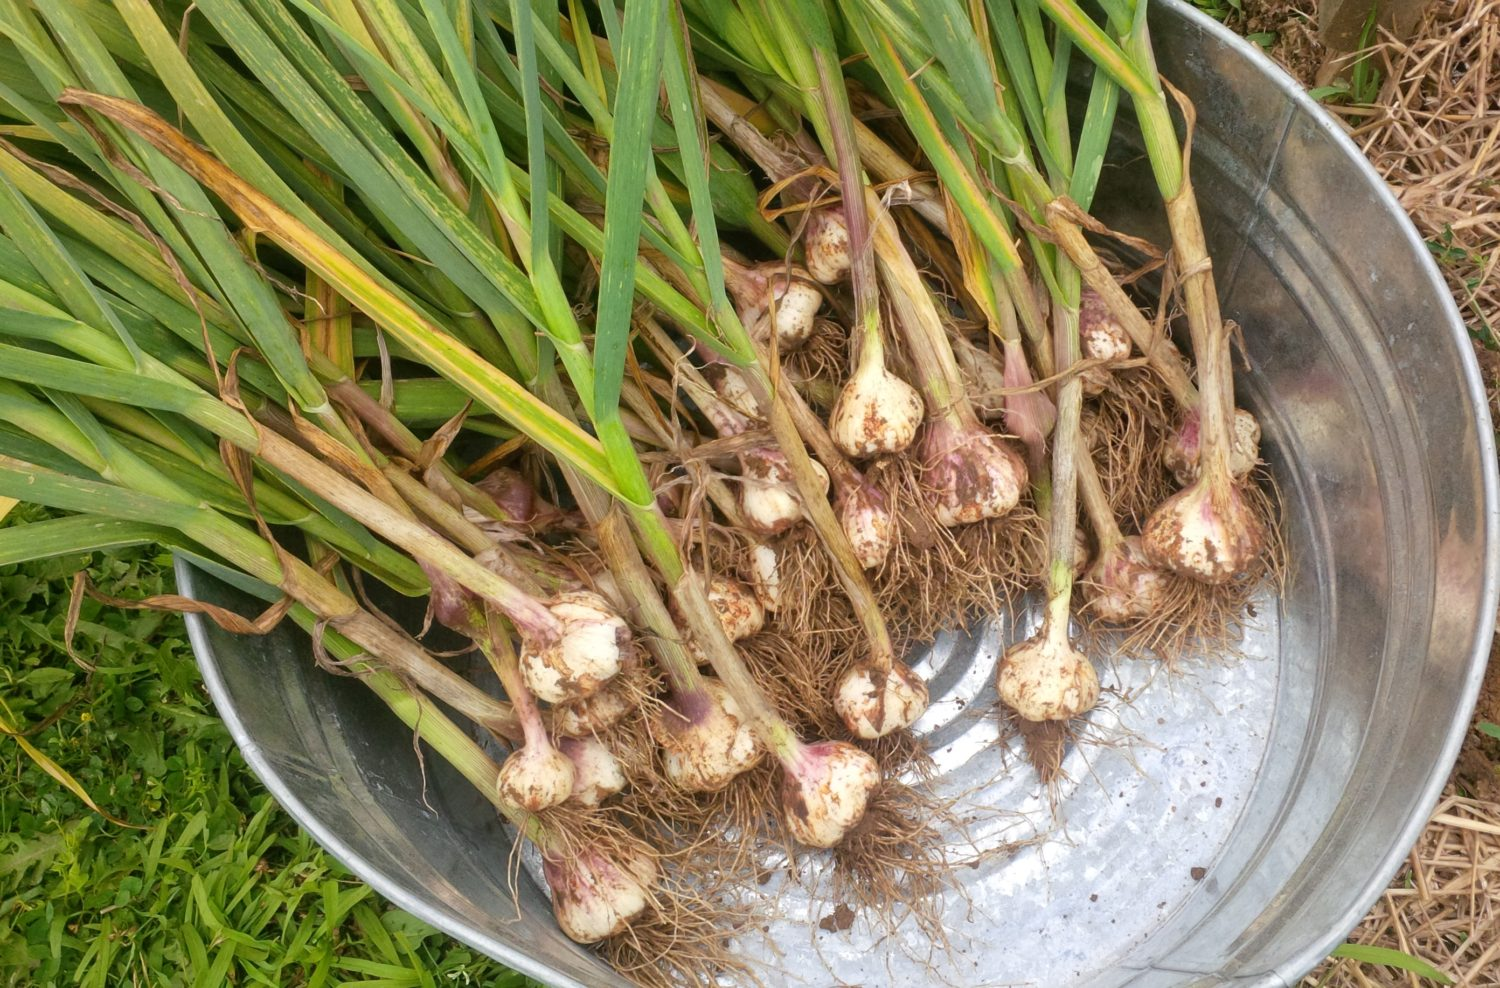 It's Garlic Season! Harvesting and Storing The Garlic Crop – Video Included!